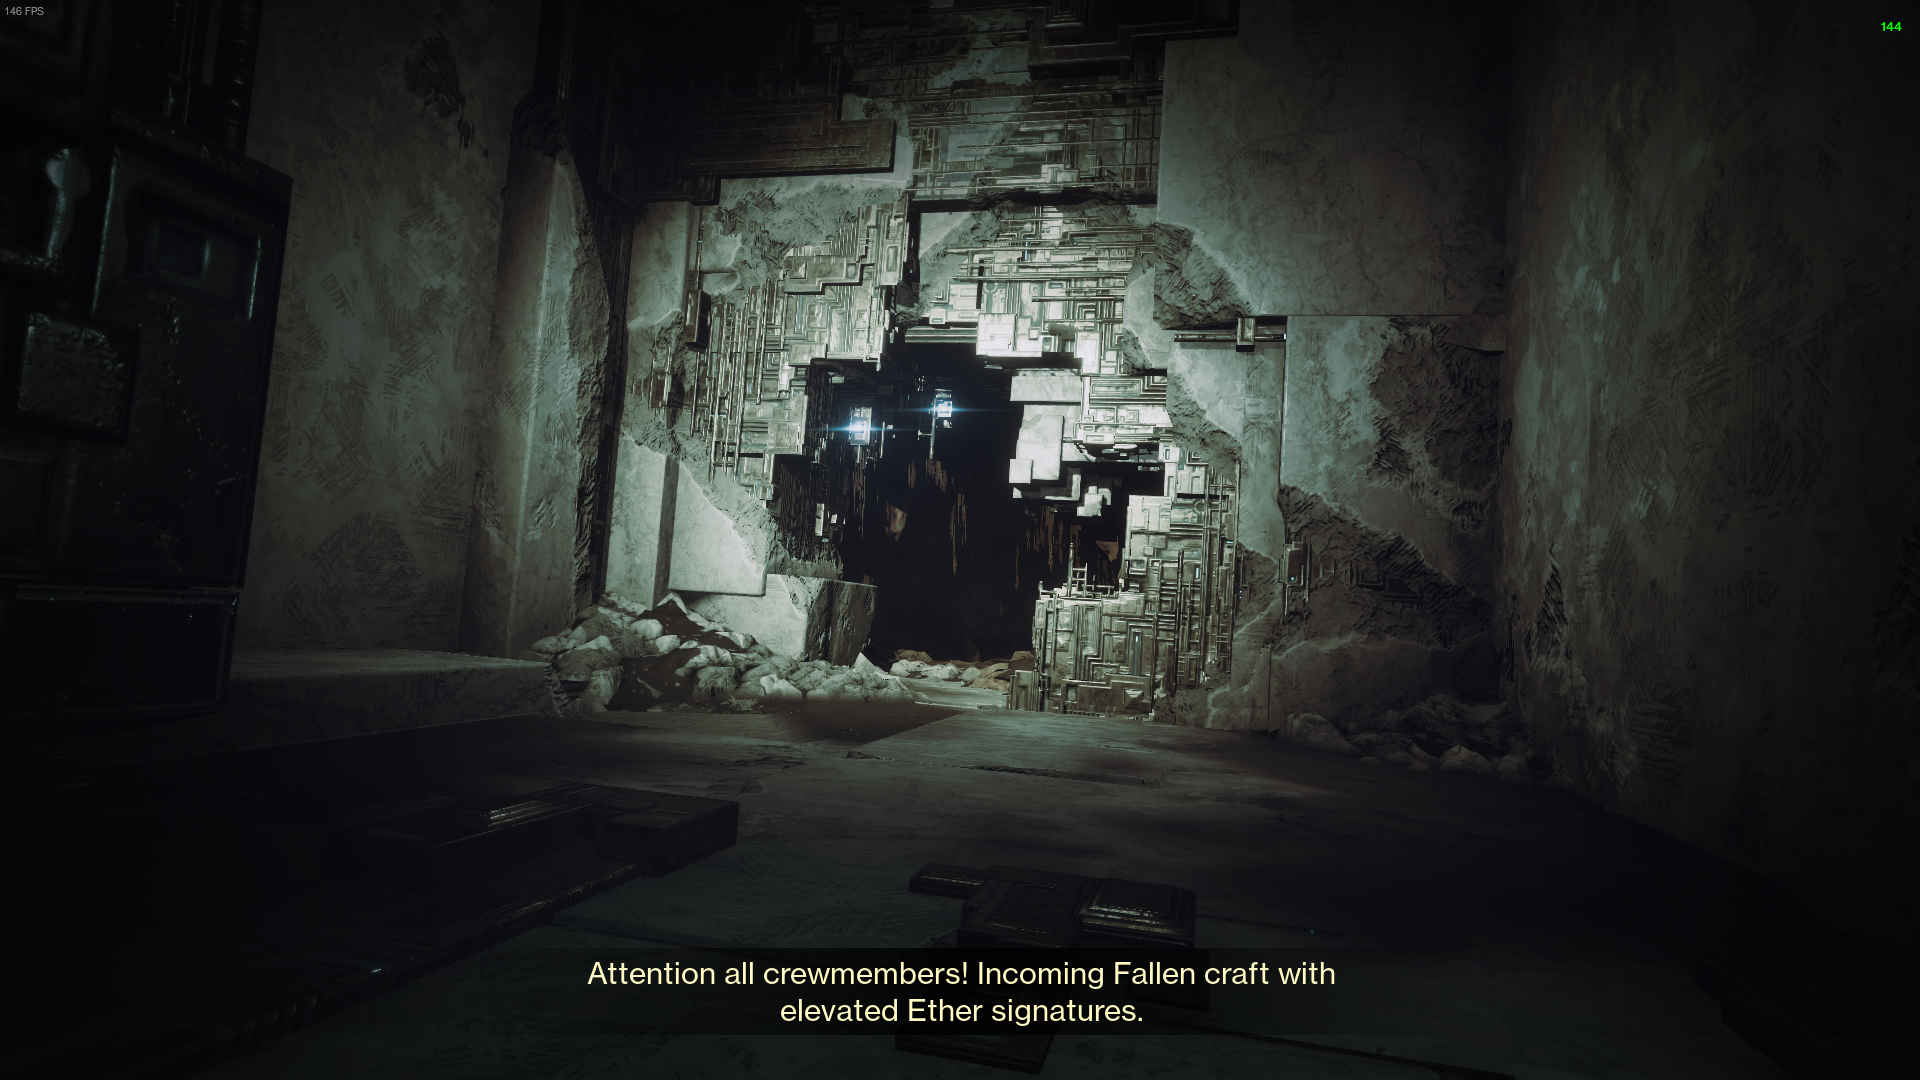 The entrance to a tunnel through a Vex wall. Intricate metal machinery full of jagged edges and other angular shapes encroach on the hole.